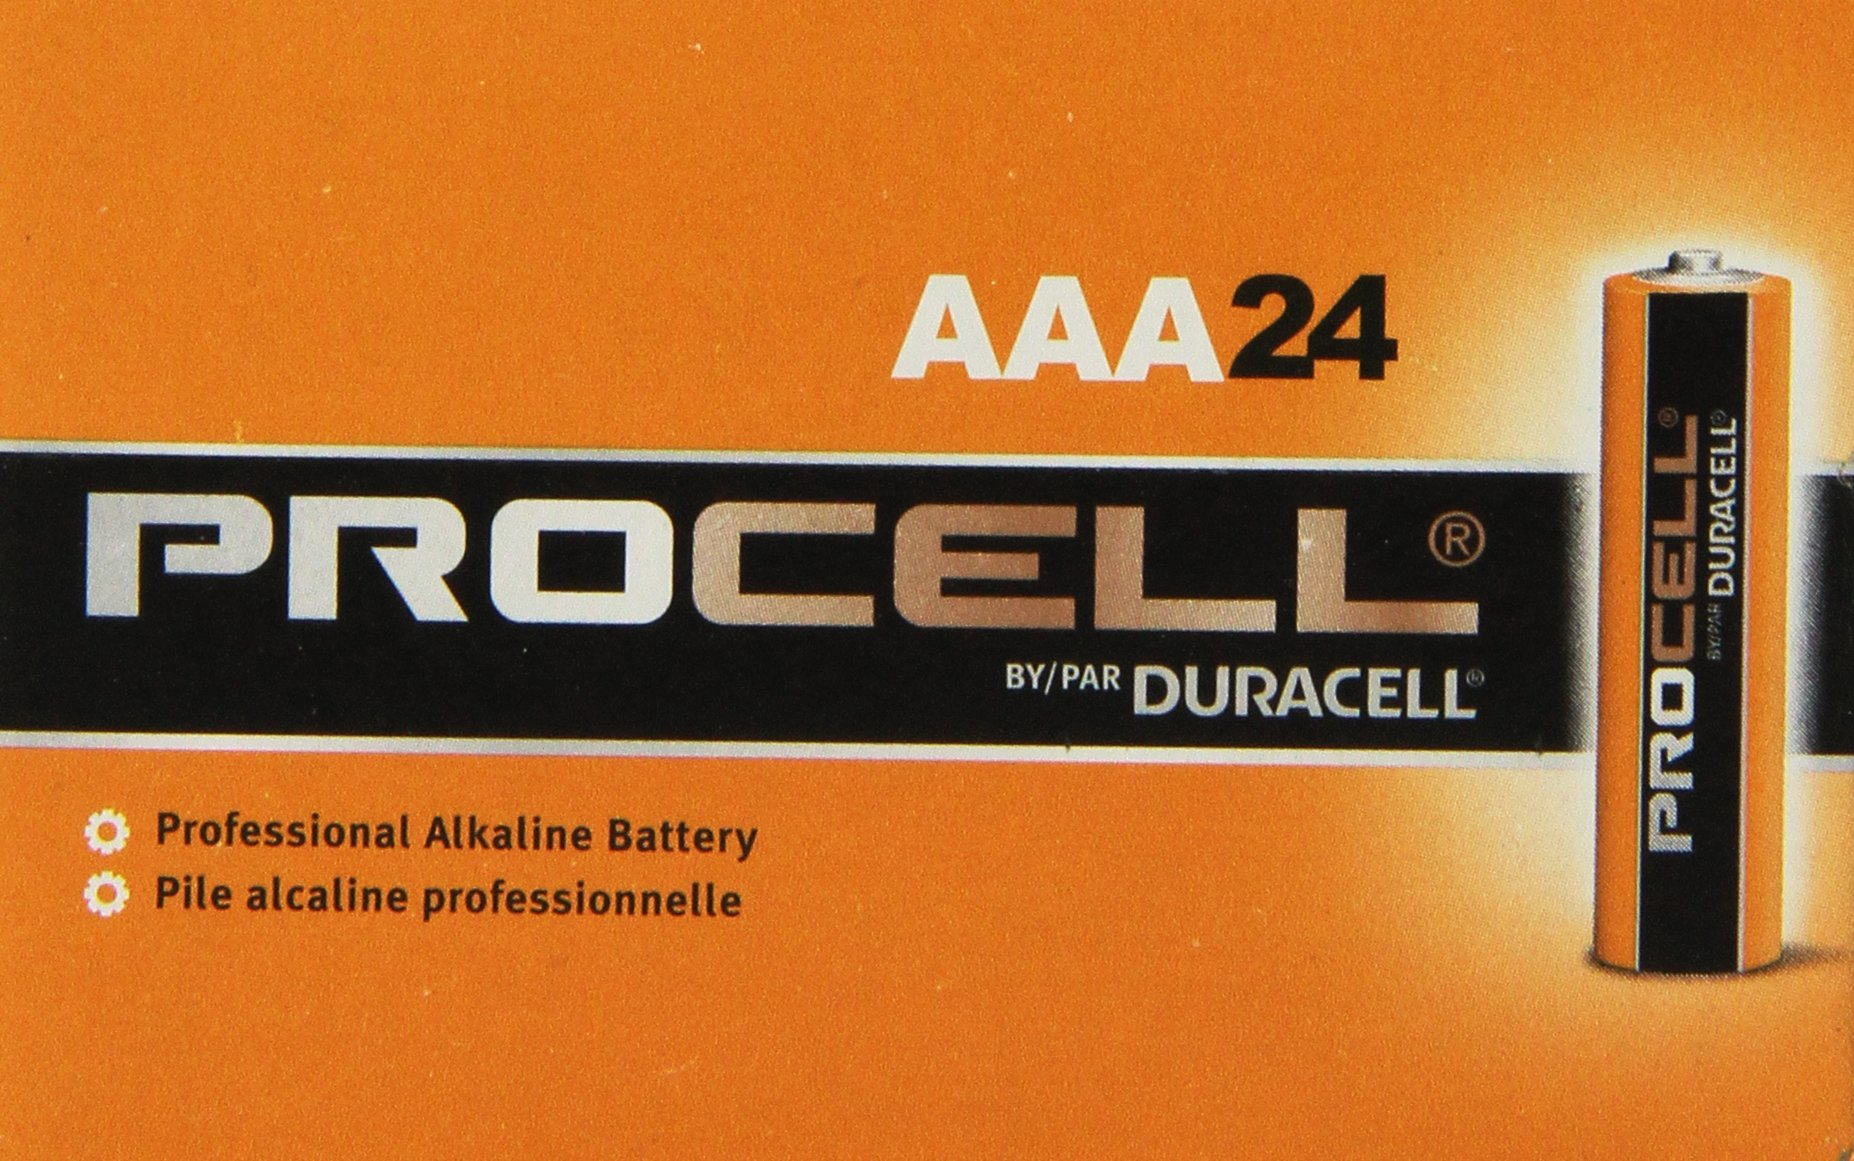 Duracell Procell-48 Battery Super Size Package- (Size-AAA) by Duracell